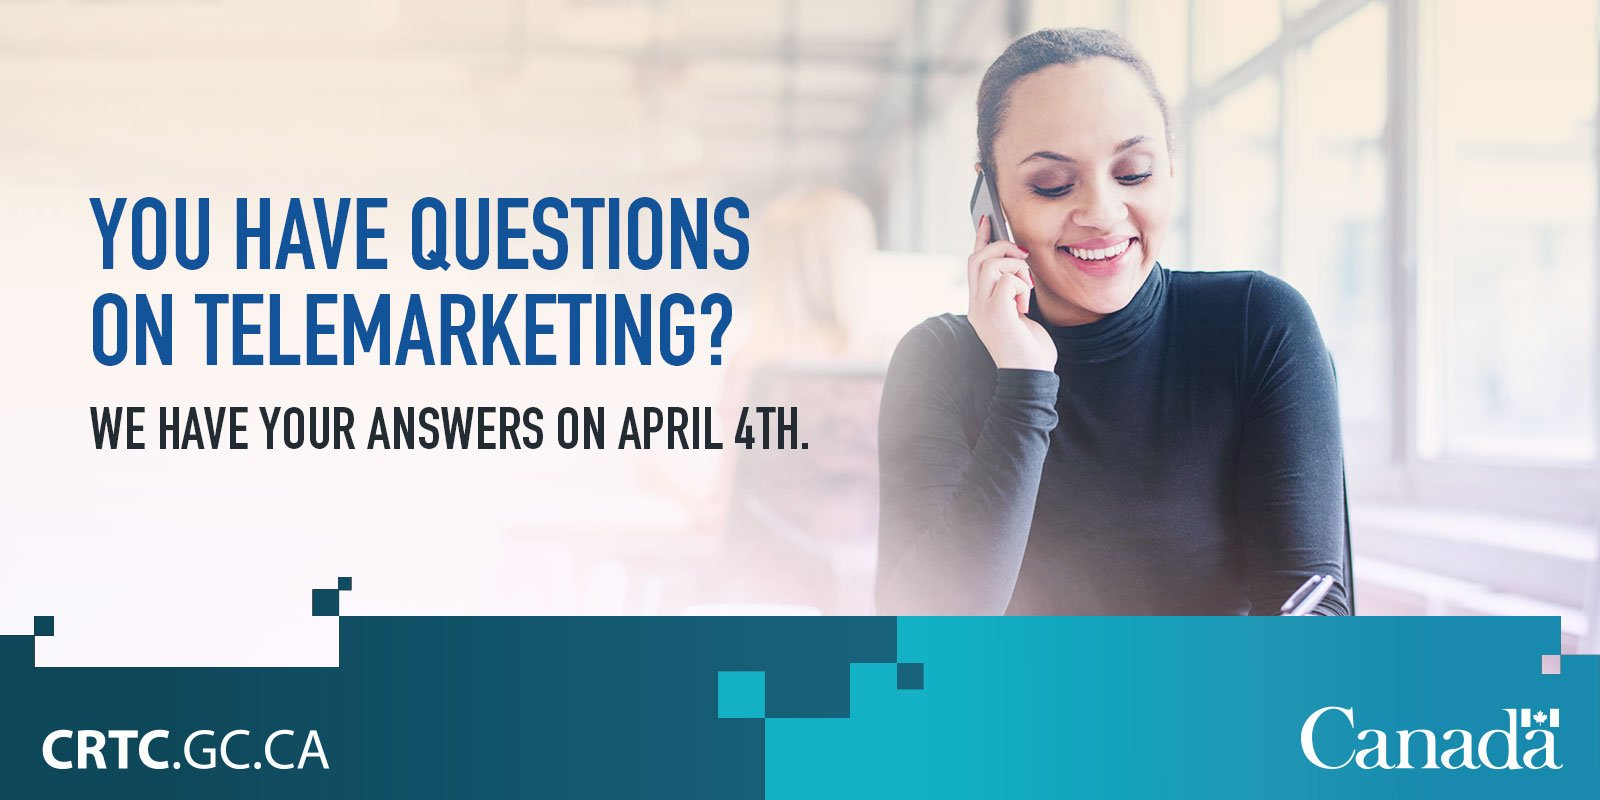 Join our #SMEPME Twitter chat Apr. 4 at noon EDT with @CRTCeng on #telemarketing rules for #smallbiz! https://t.co/m8dgRI32Hy https://t.co/7p09v3Th9X